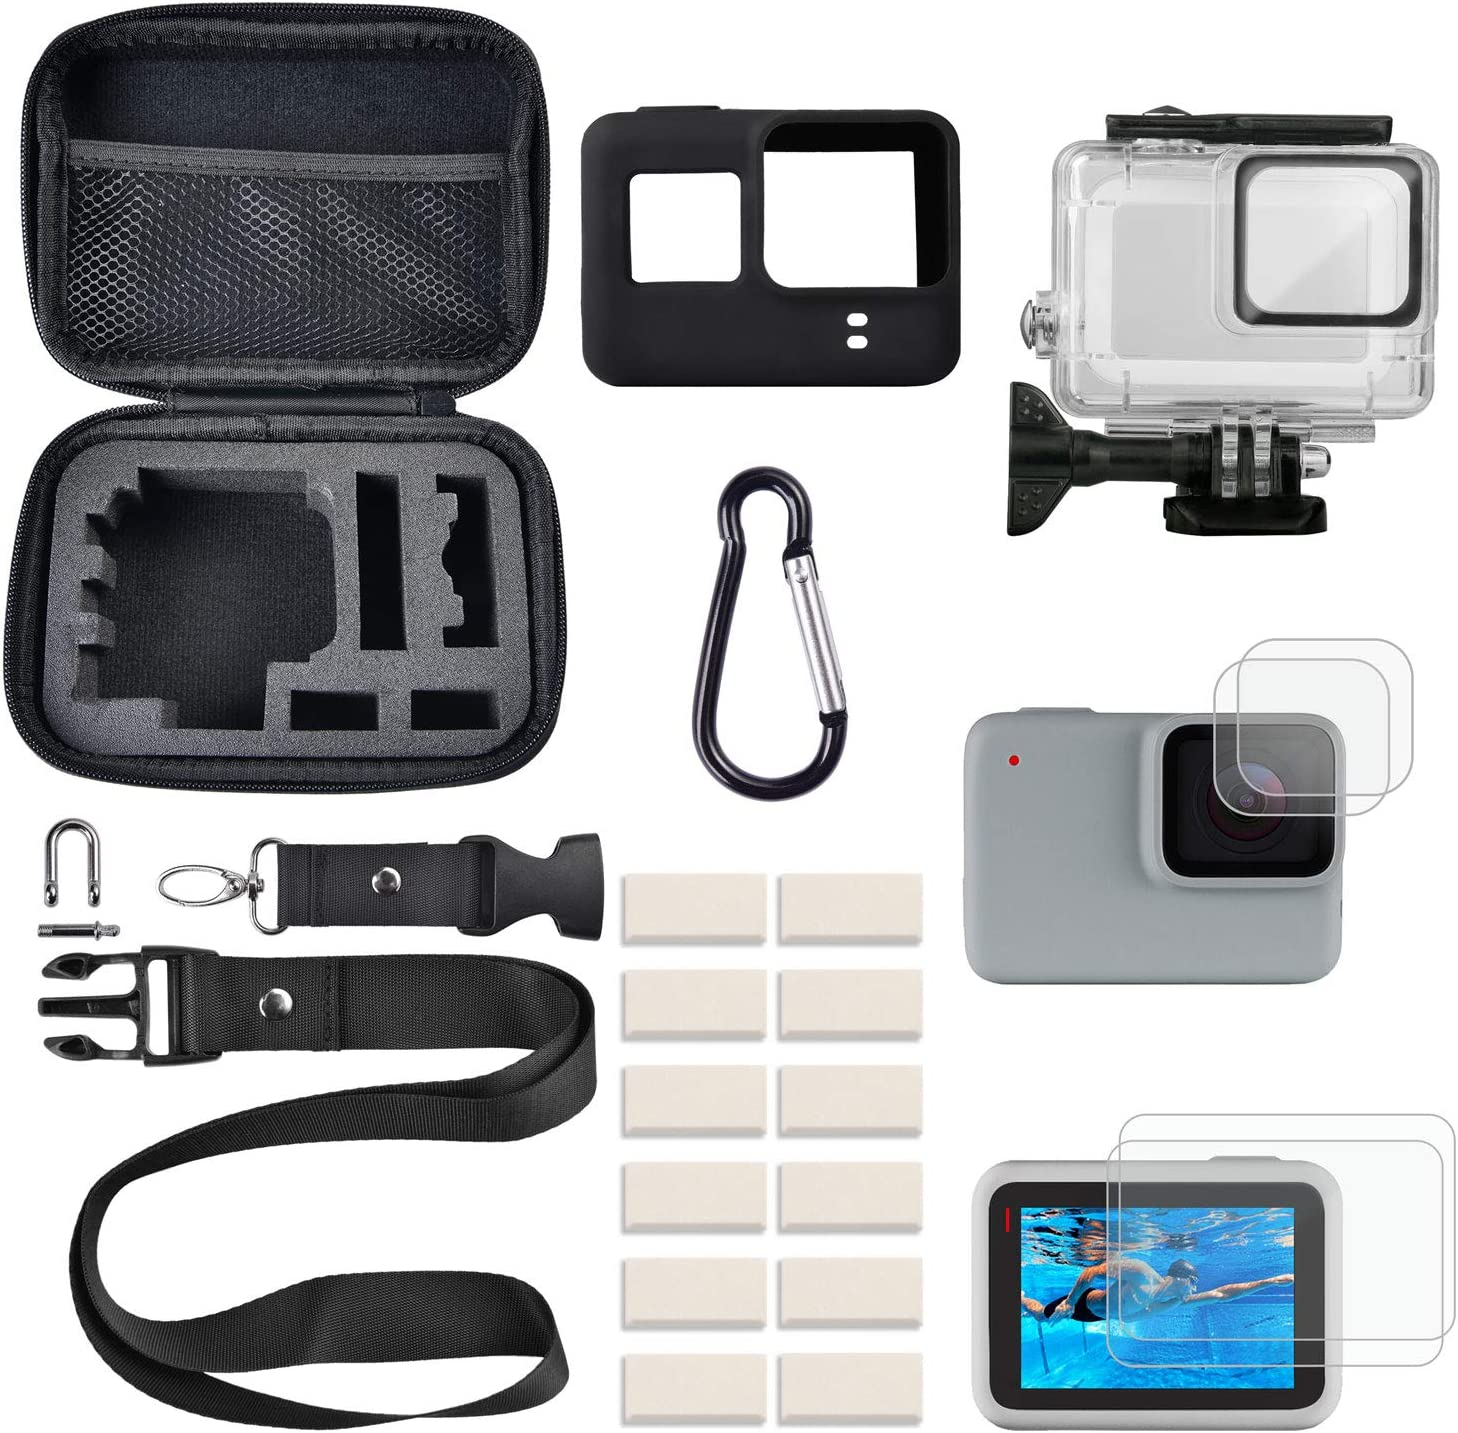 FINEST+ Accessories Kit for GoPro Hero 10 White/Silver Waterproof  Housing+Tempered Glass Screen Protector+Carrying Case+Sleeve  Case+Carabiner+Anti-Fog